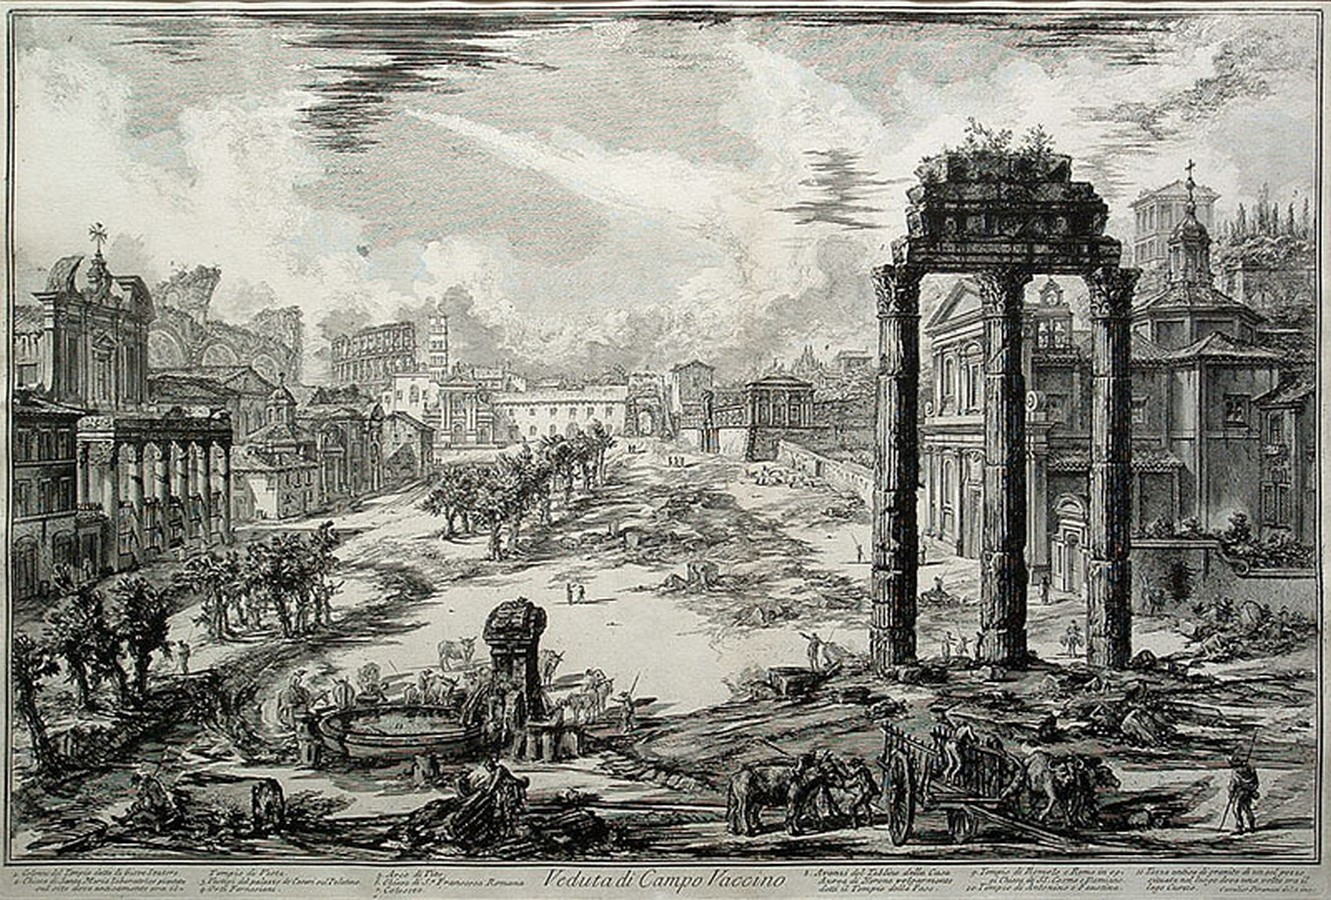 The Roman Forum, Rome: Heritage stuck in time - Sheet10